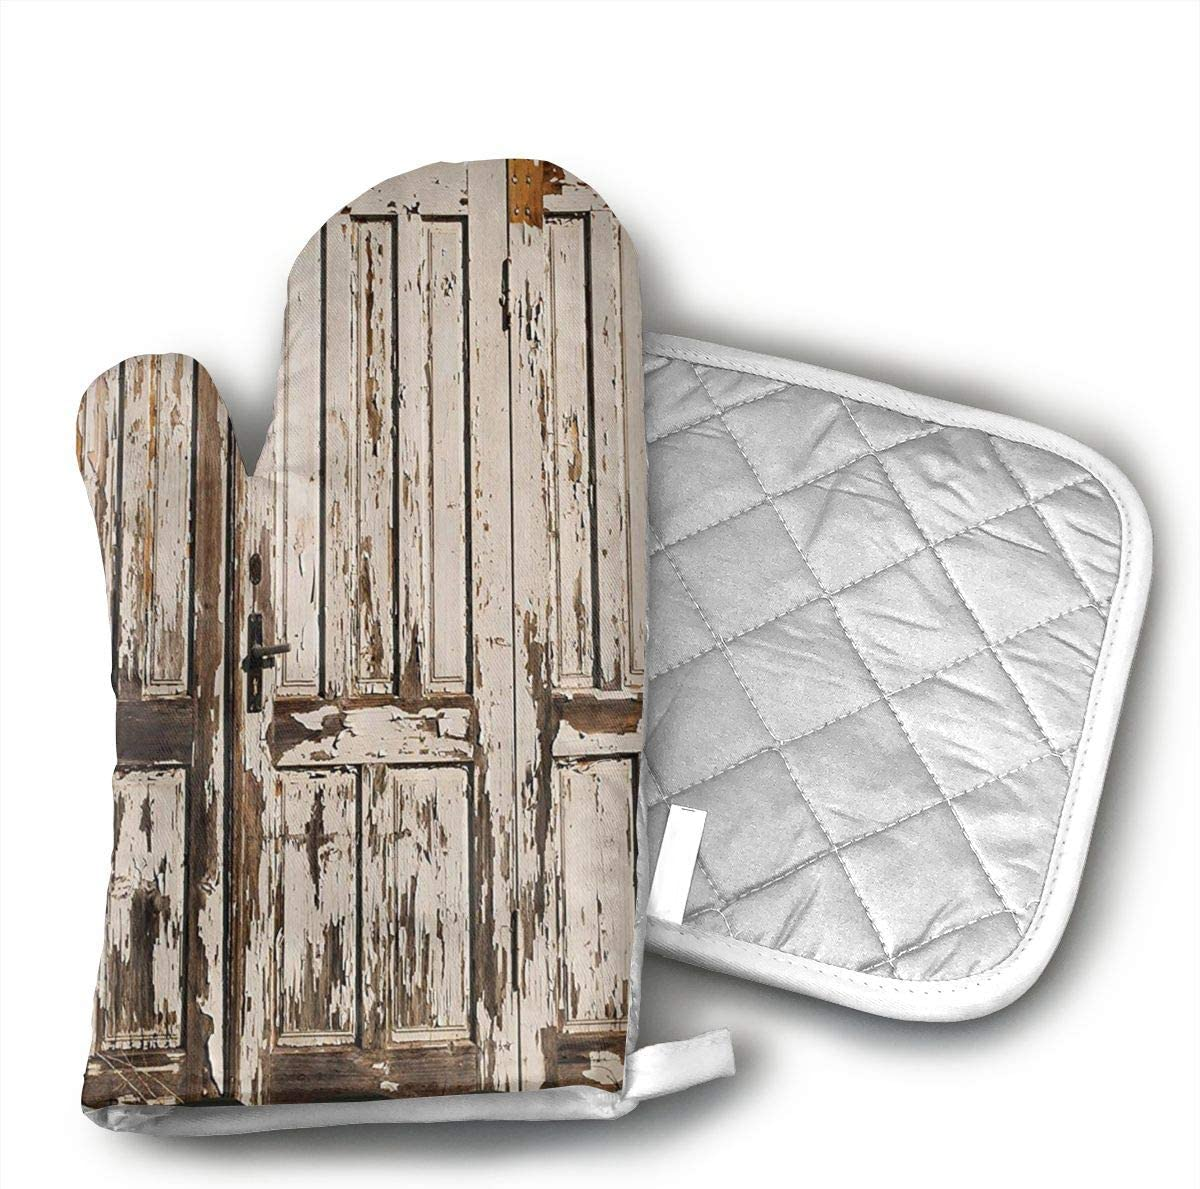 Wiqo9 Vintage House Entrance with Vertical Old Planks Distressed Rustic Hardwood Design Oven Mitts and Pot Holders Kitchen Mitten Cooking Gloves,Cooking, Baking, BBQ.